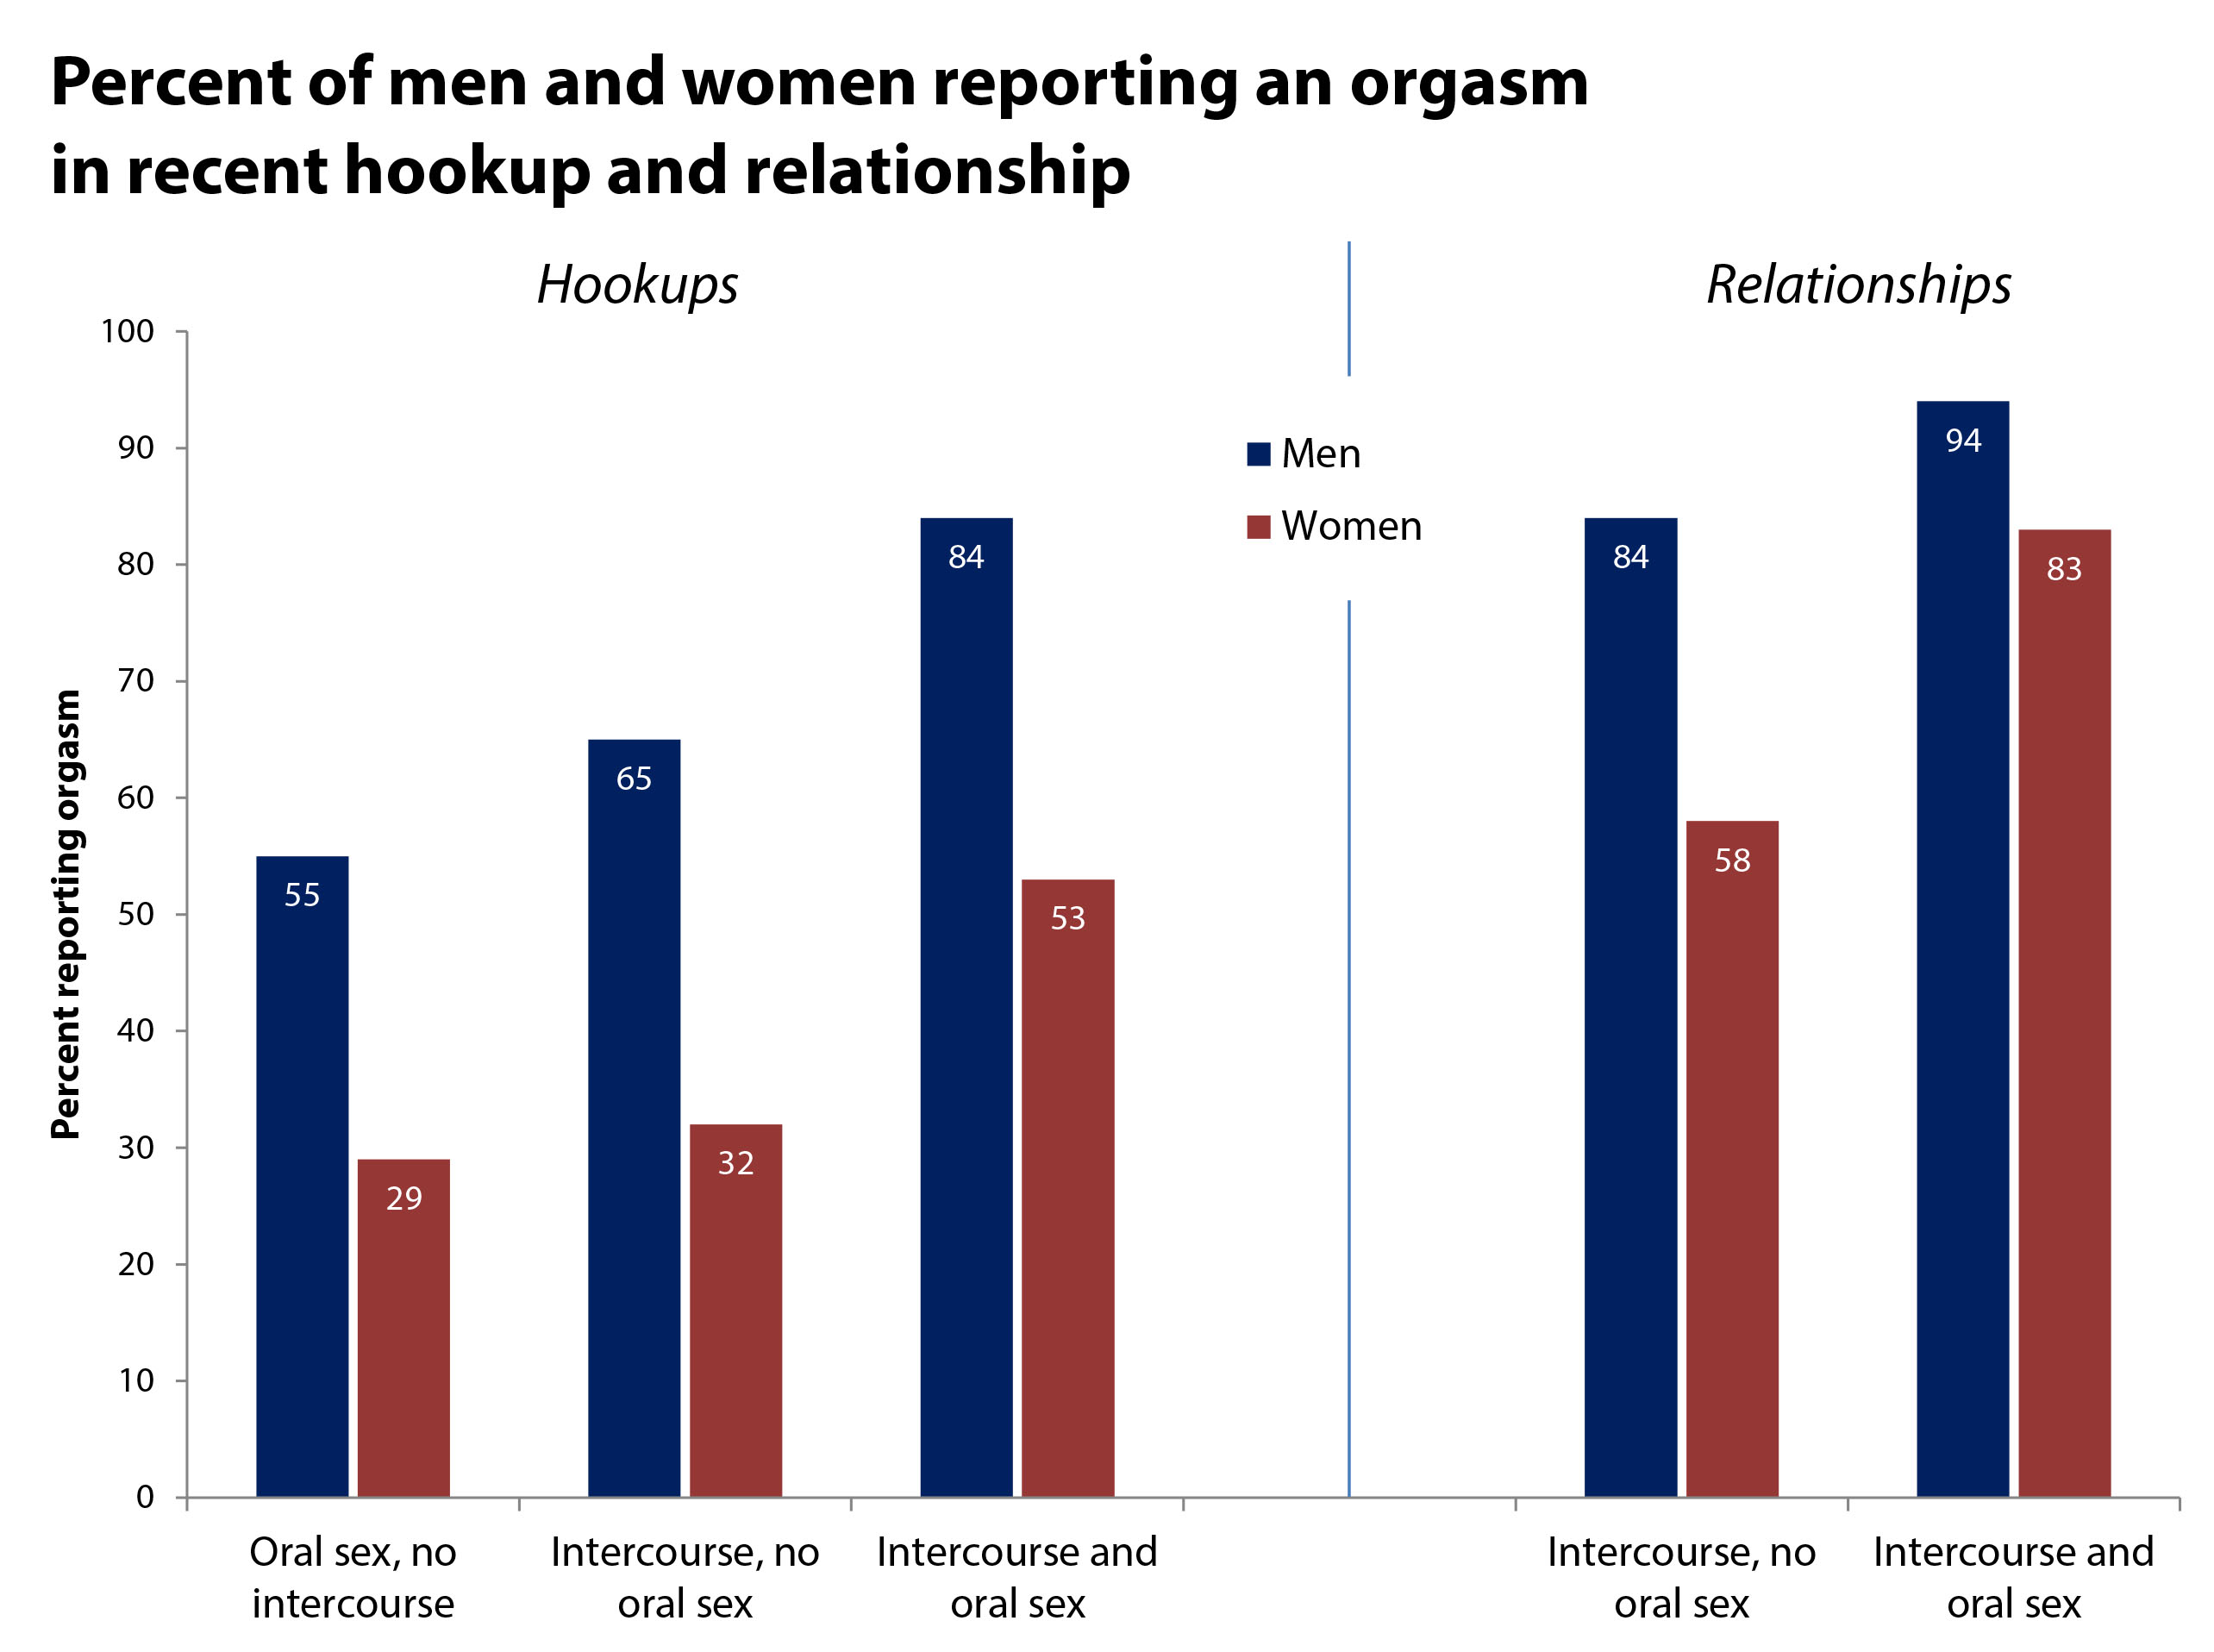 Note: Oral sex refers to whether the student reporting on his or her own orgasm received oral sex. Data limited to students identifying as heterosexual in male/female events.